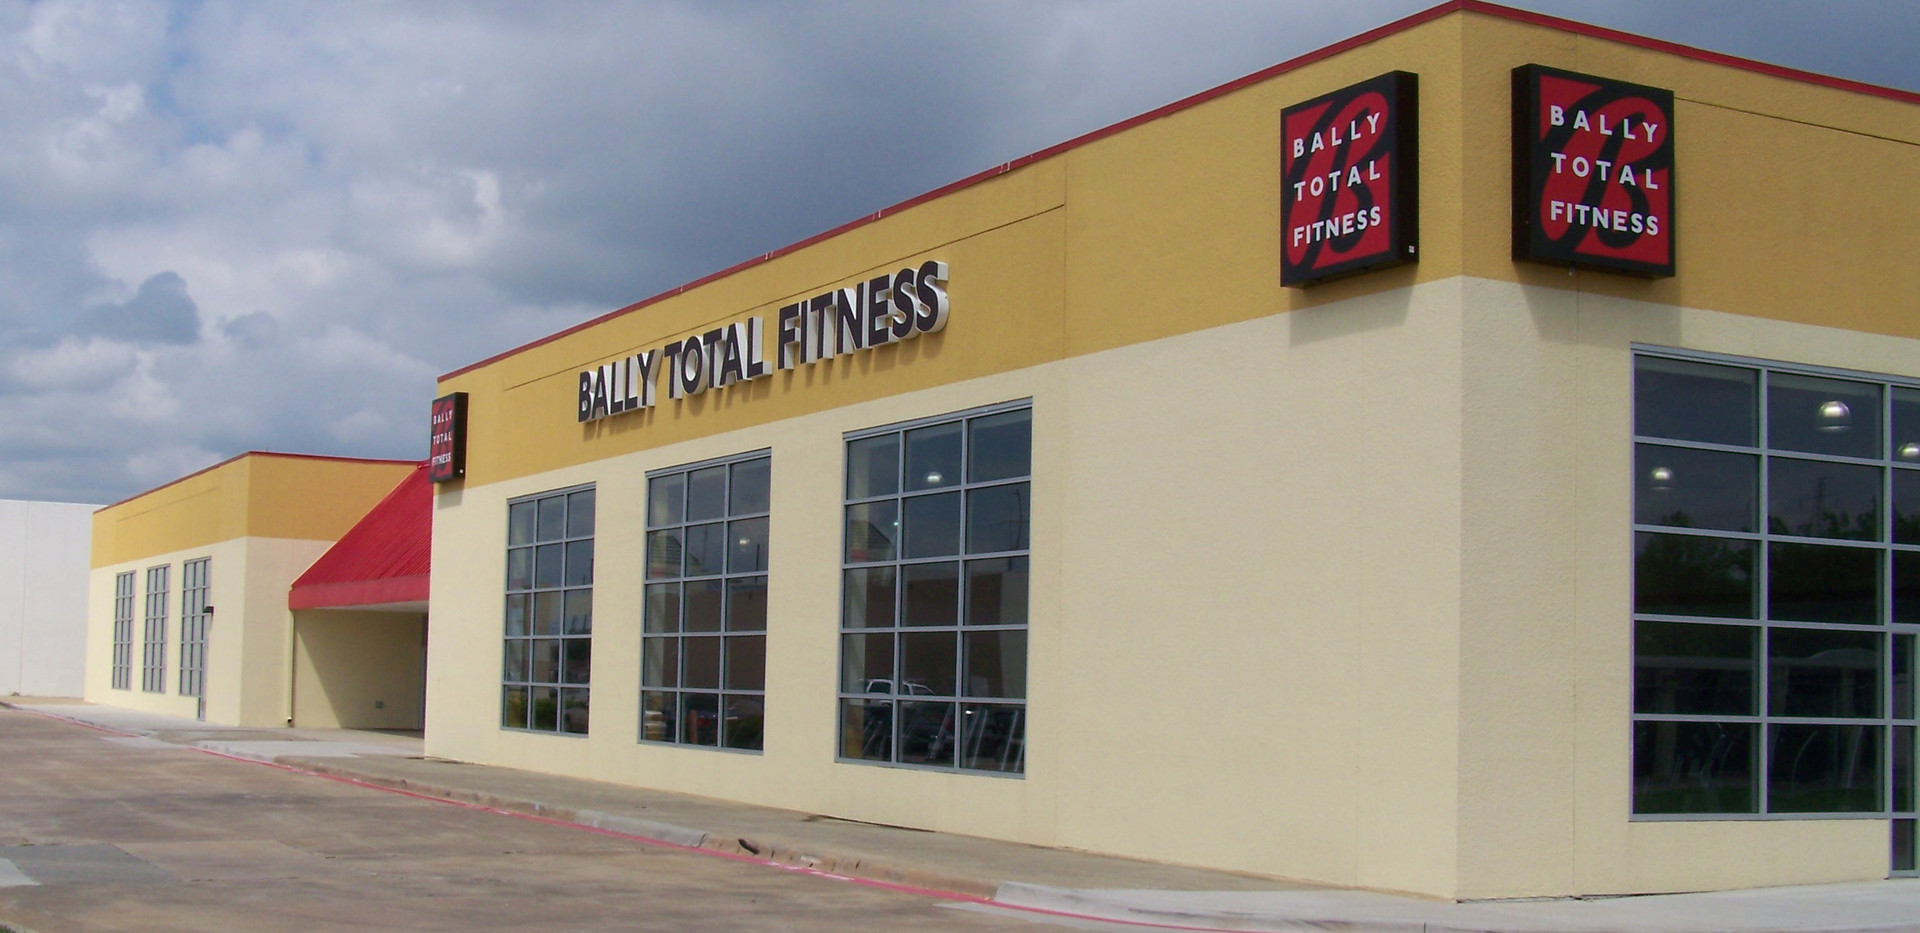 Bally's Total Fitness | Frank Dale Construction